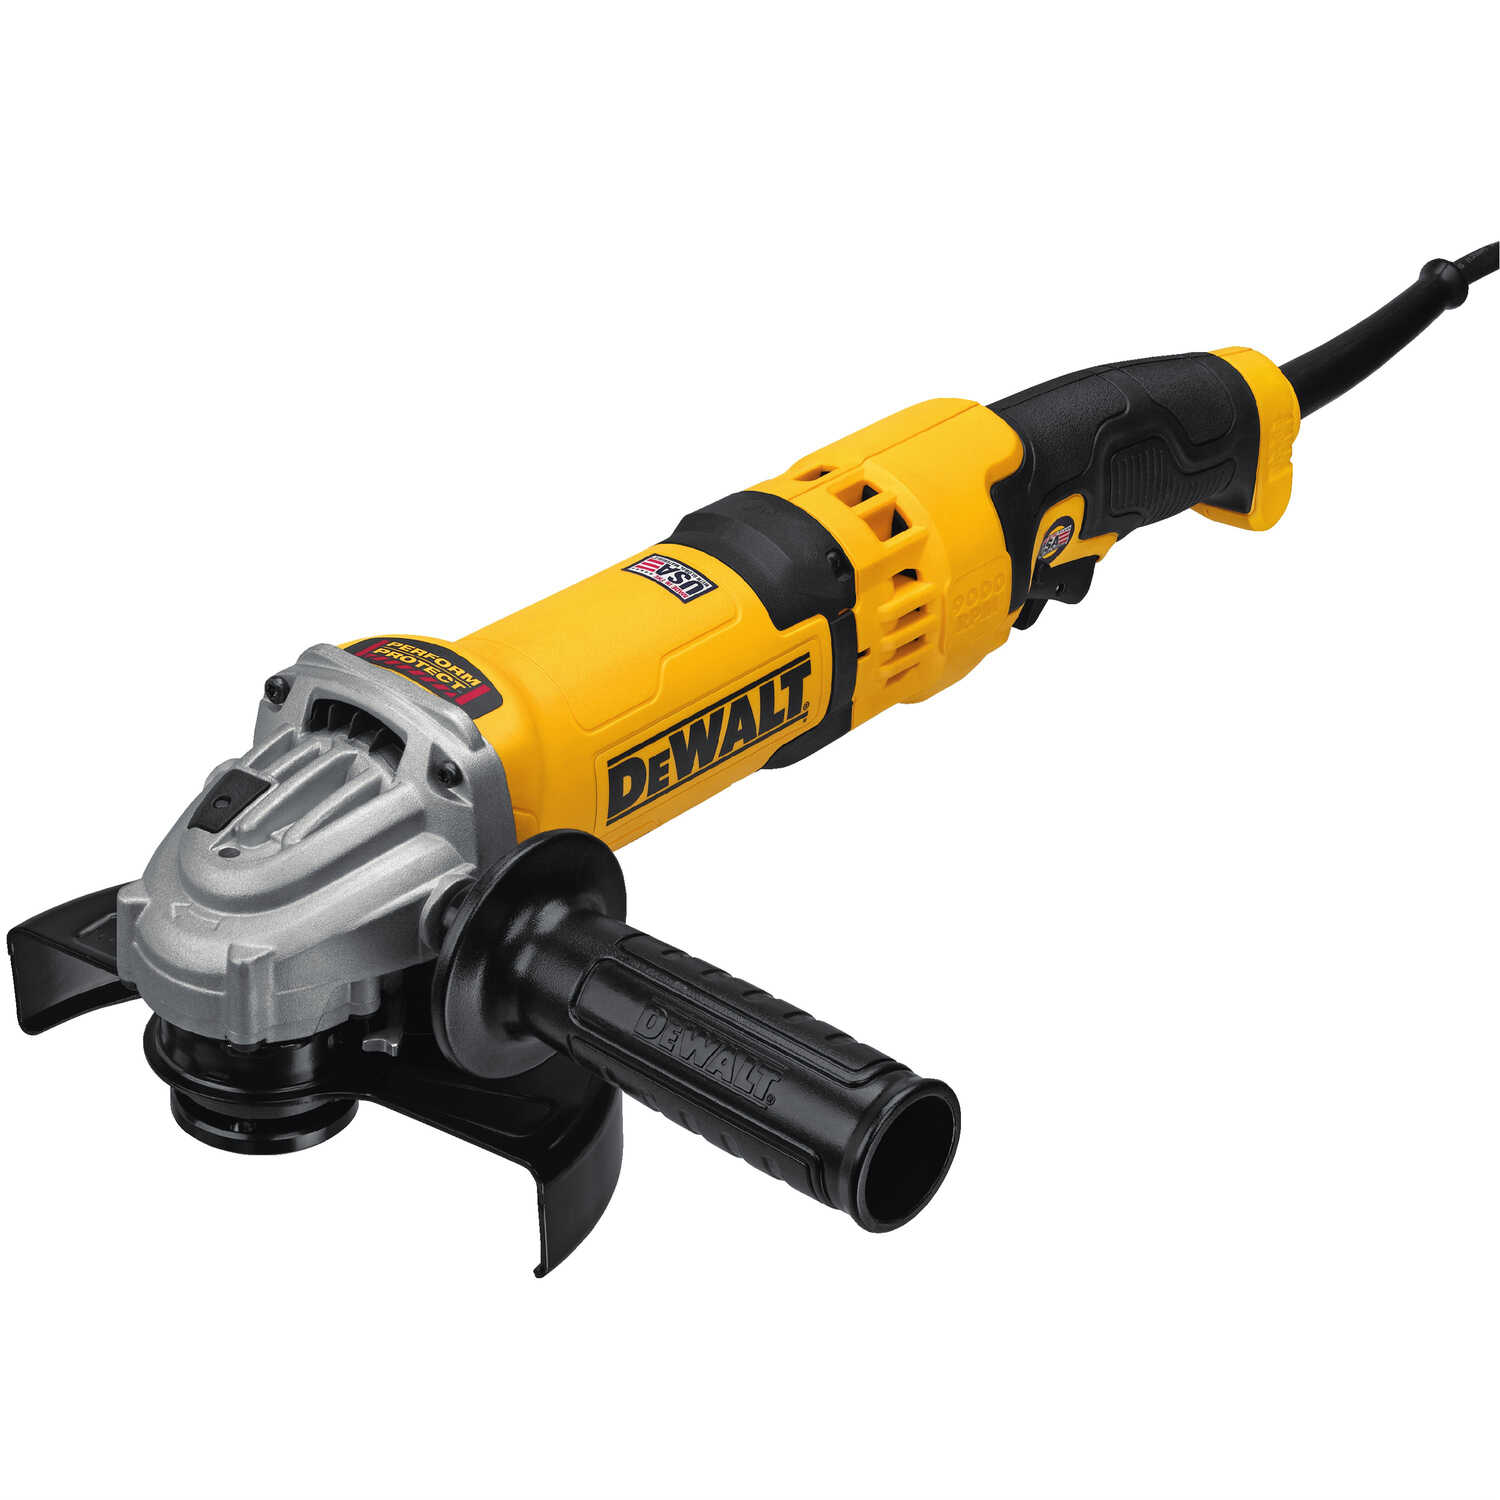 DeWalt  Corded  13 amps 4-1/2 to 6 in. Small Angle Grinder  Bare Tool  9000 rpm